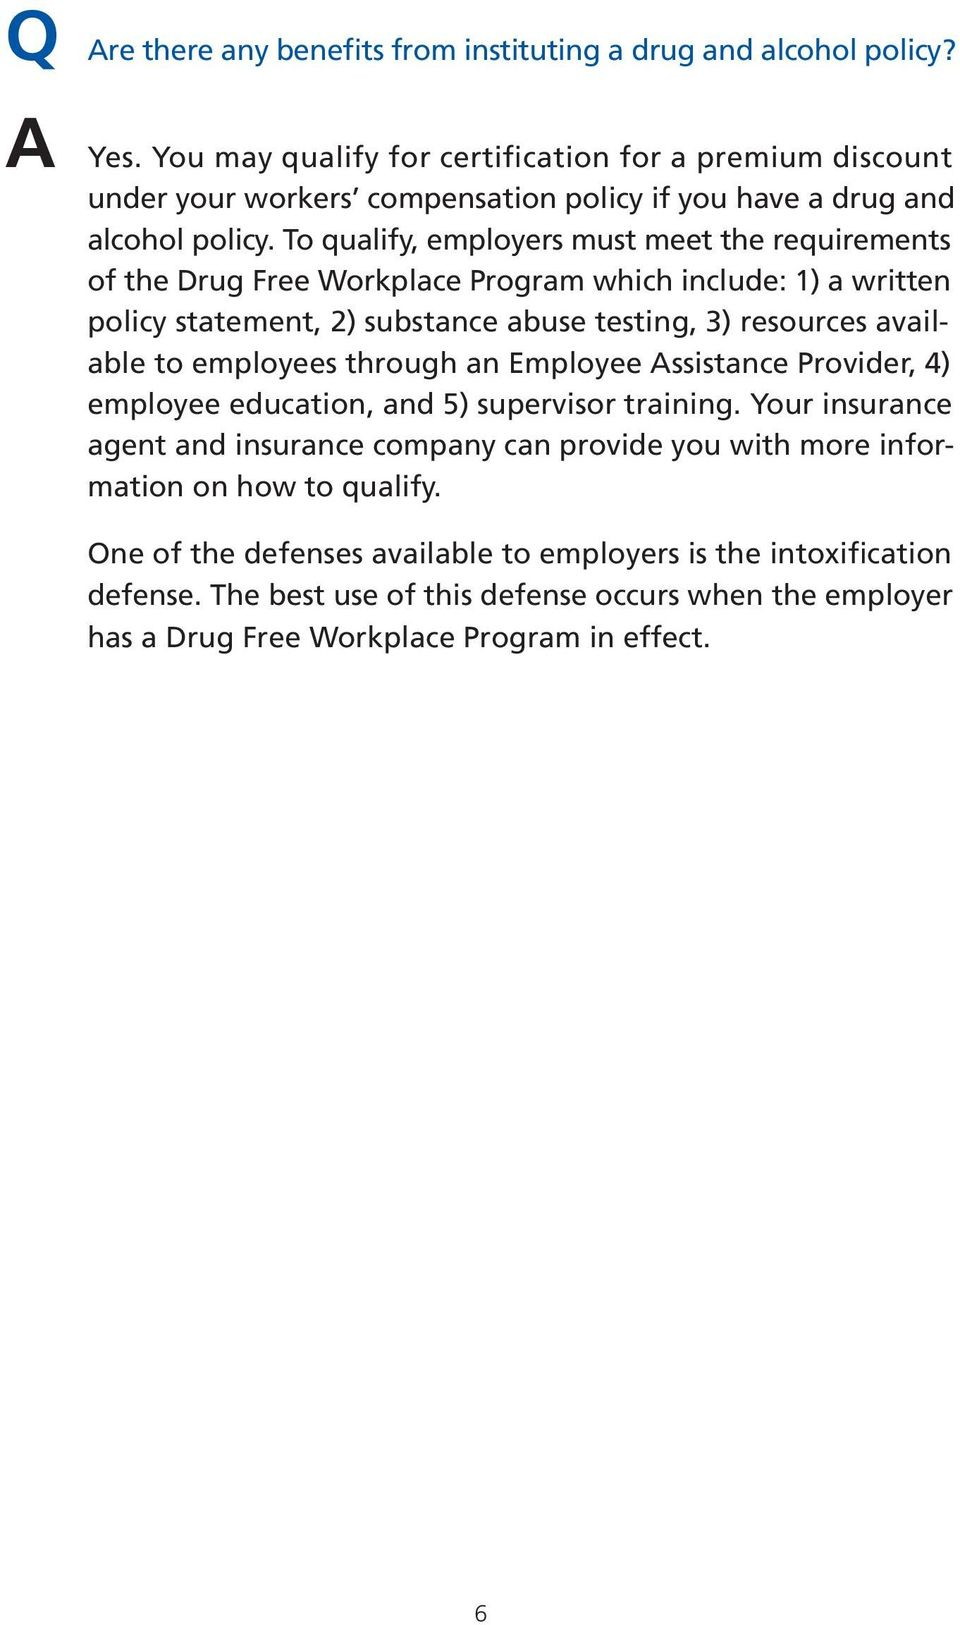 To qualify, employers must meet the requirements of the Drug Free Workplace Program which include: 1) a written policy statement, 2) substance abuse testing, 3) resources available to